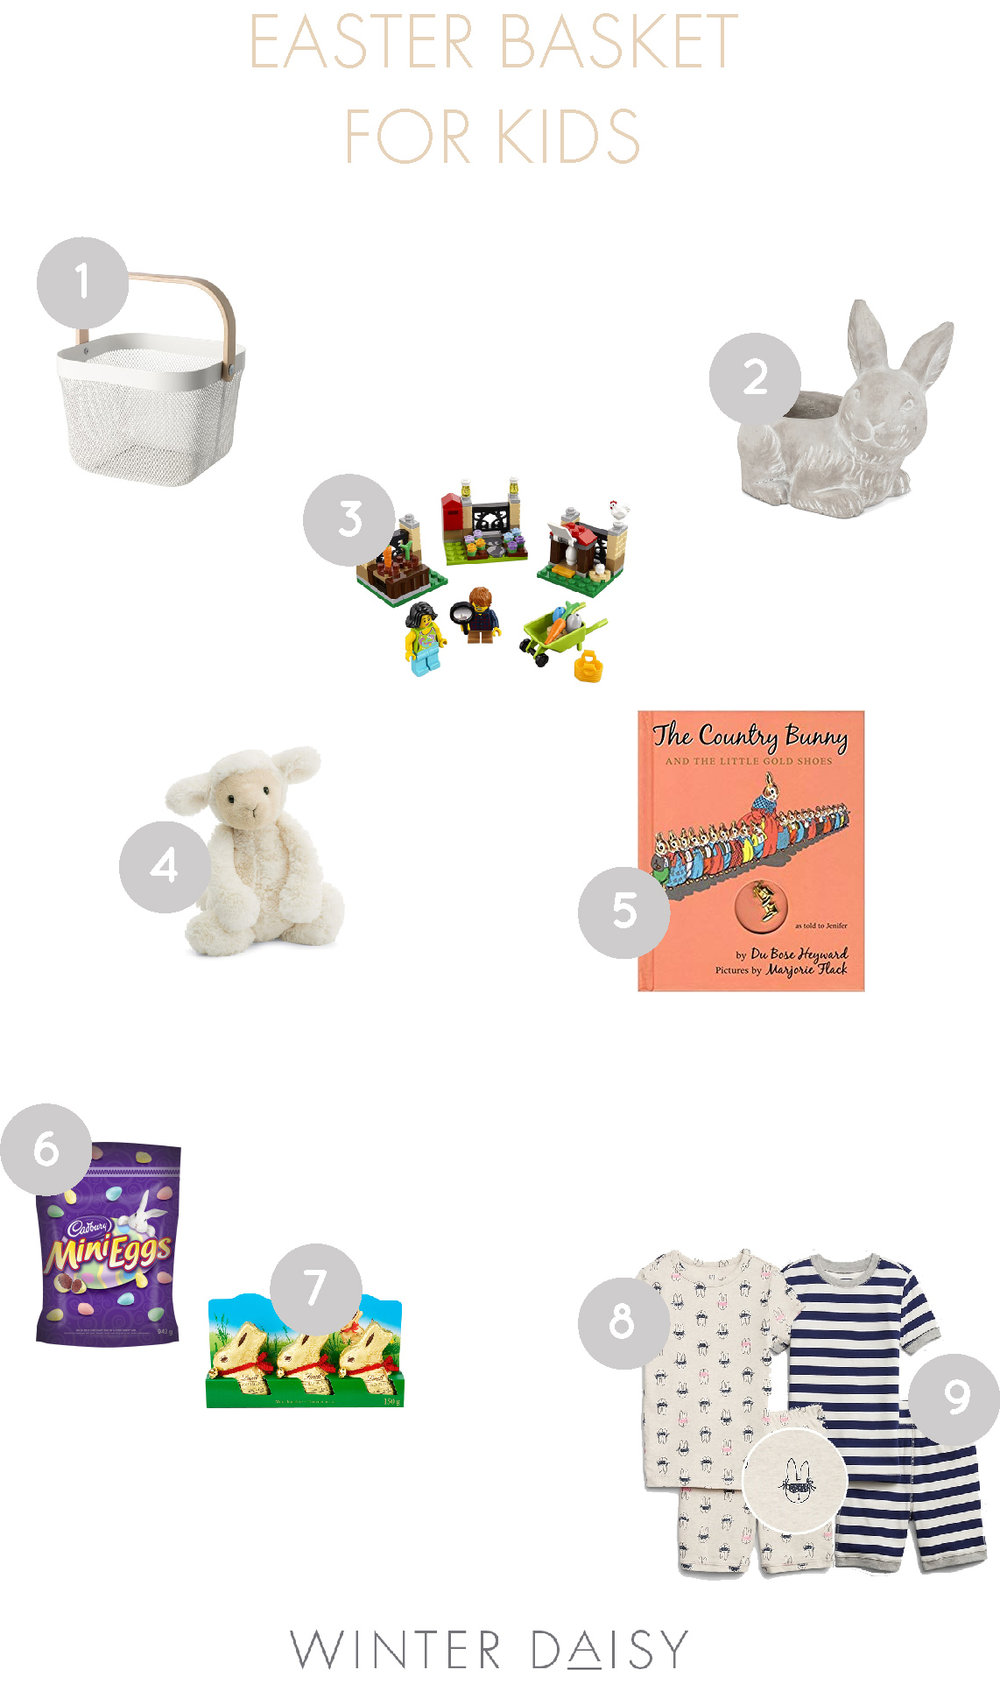 Contents of an Easter basket for kids